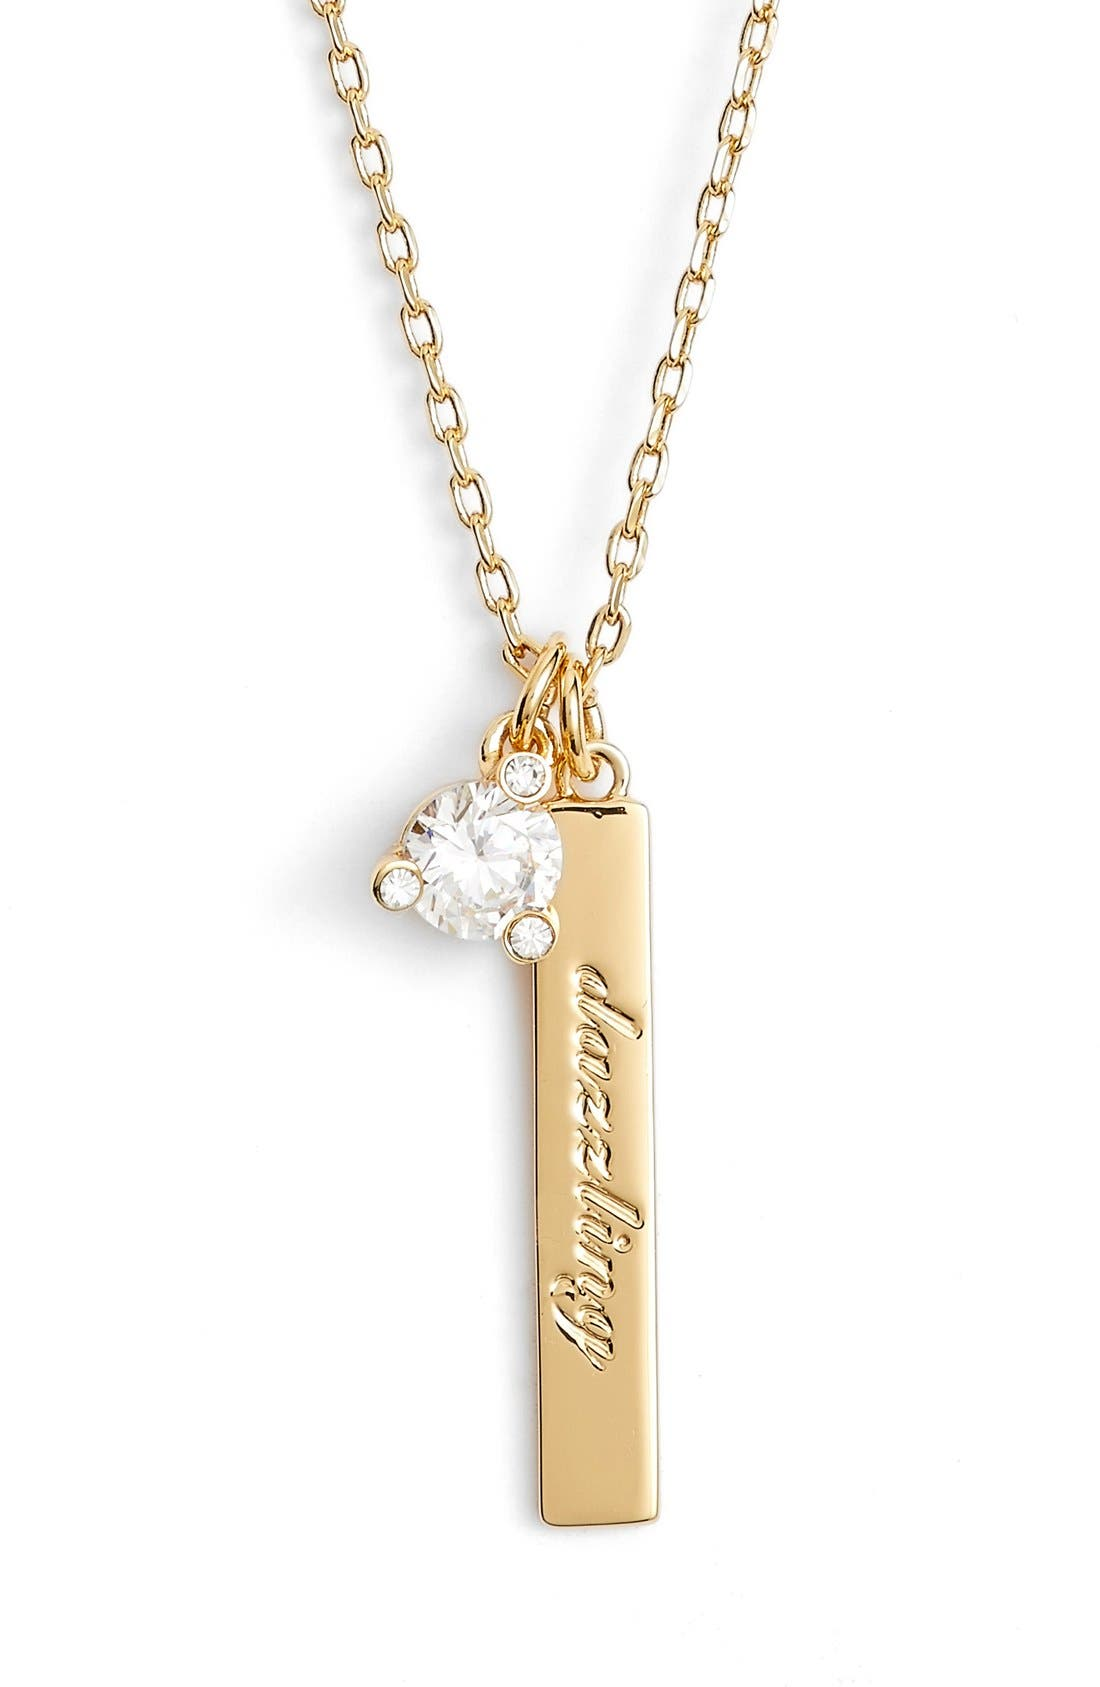 Main Image - kate spade new york born to be pendant necklace